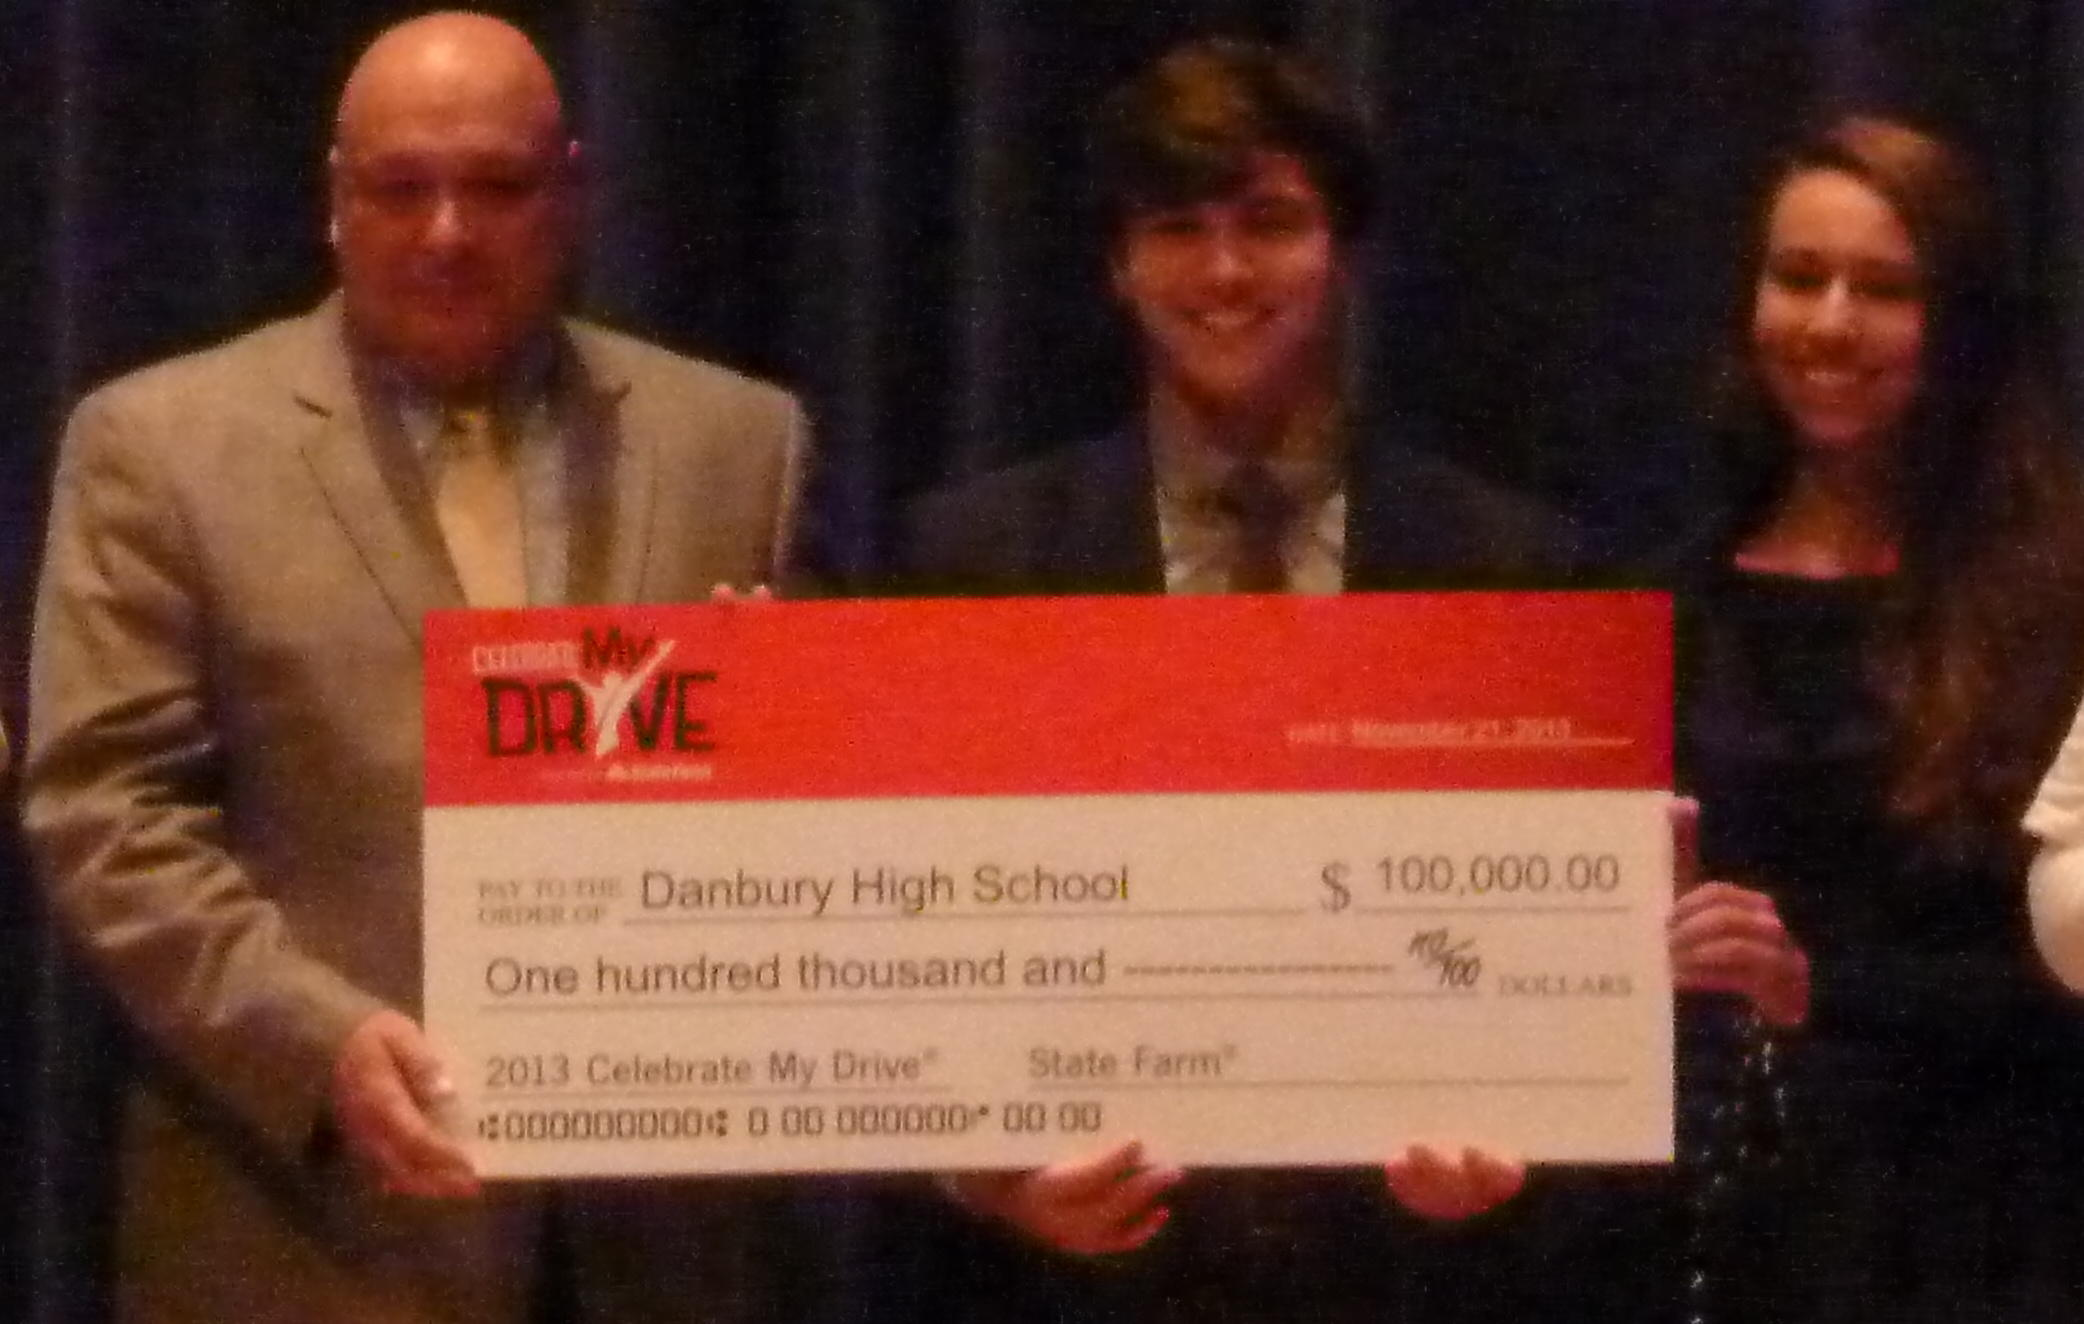 Danbury High wins $100,000 grant in safe driving contest